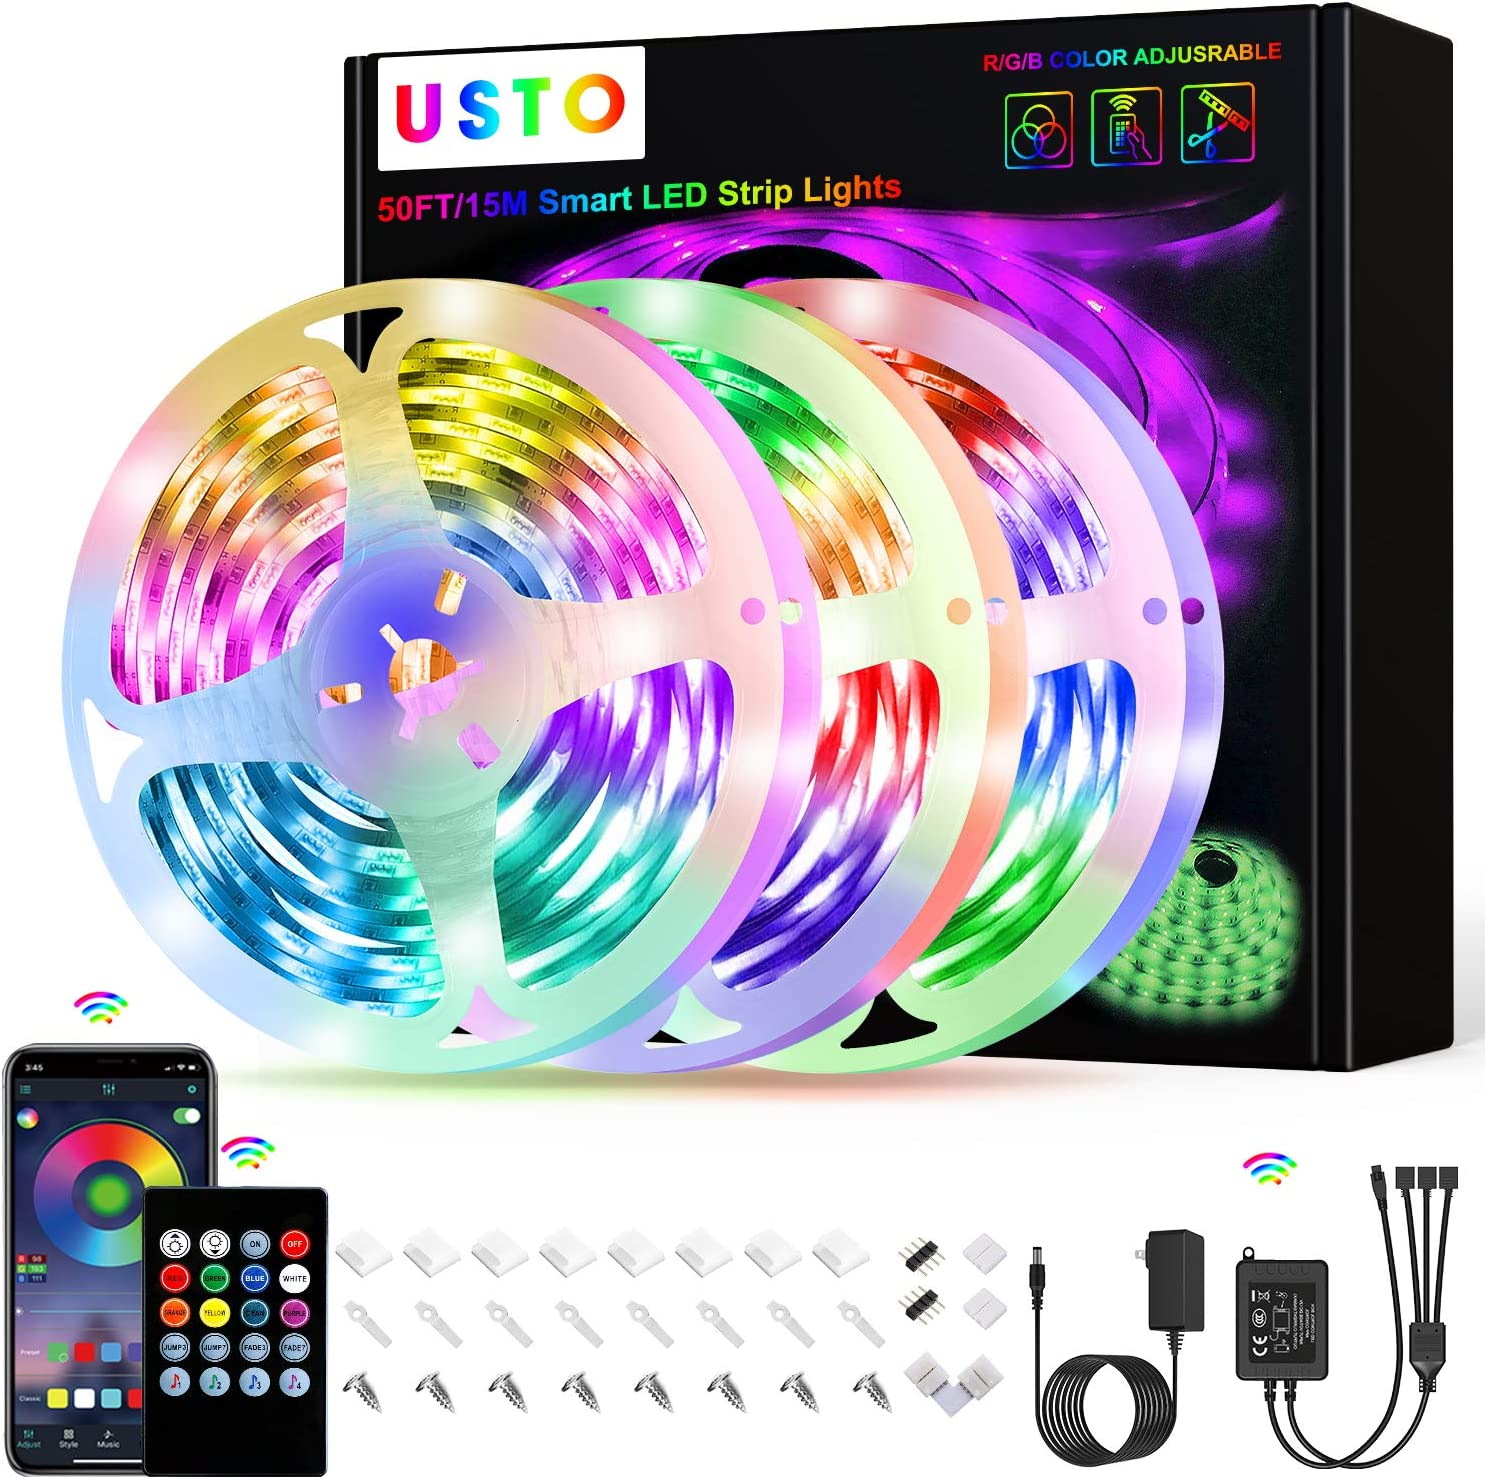 50ft Led Strip Lights, USTO Music Sync Color Changing Led Lights Strip, Led Tape Lights with Phone App and Remote, Led Lights for Bedroom,Living Room,Party